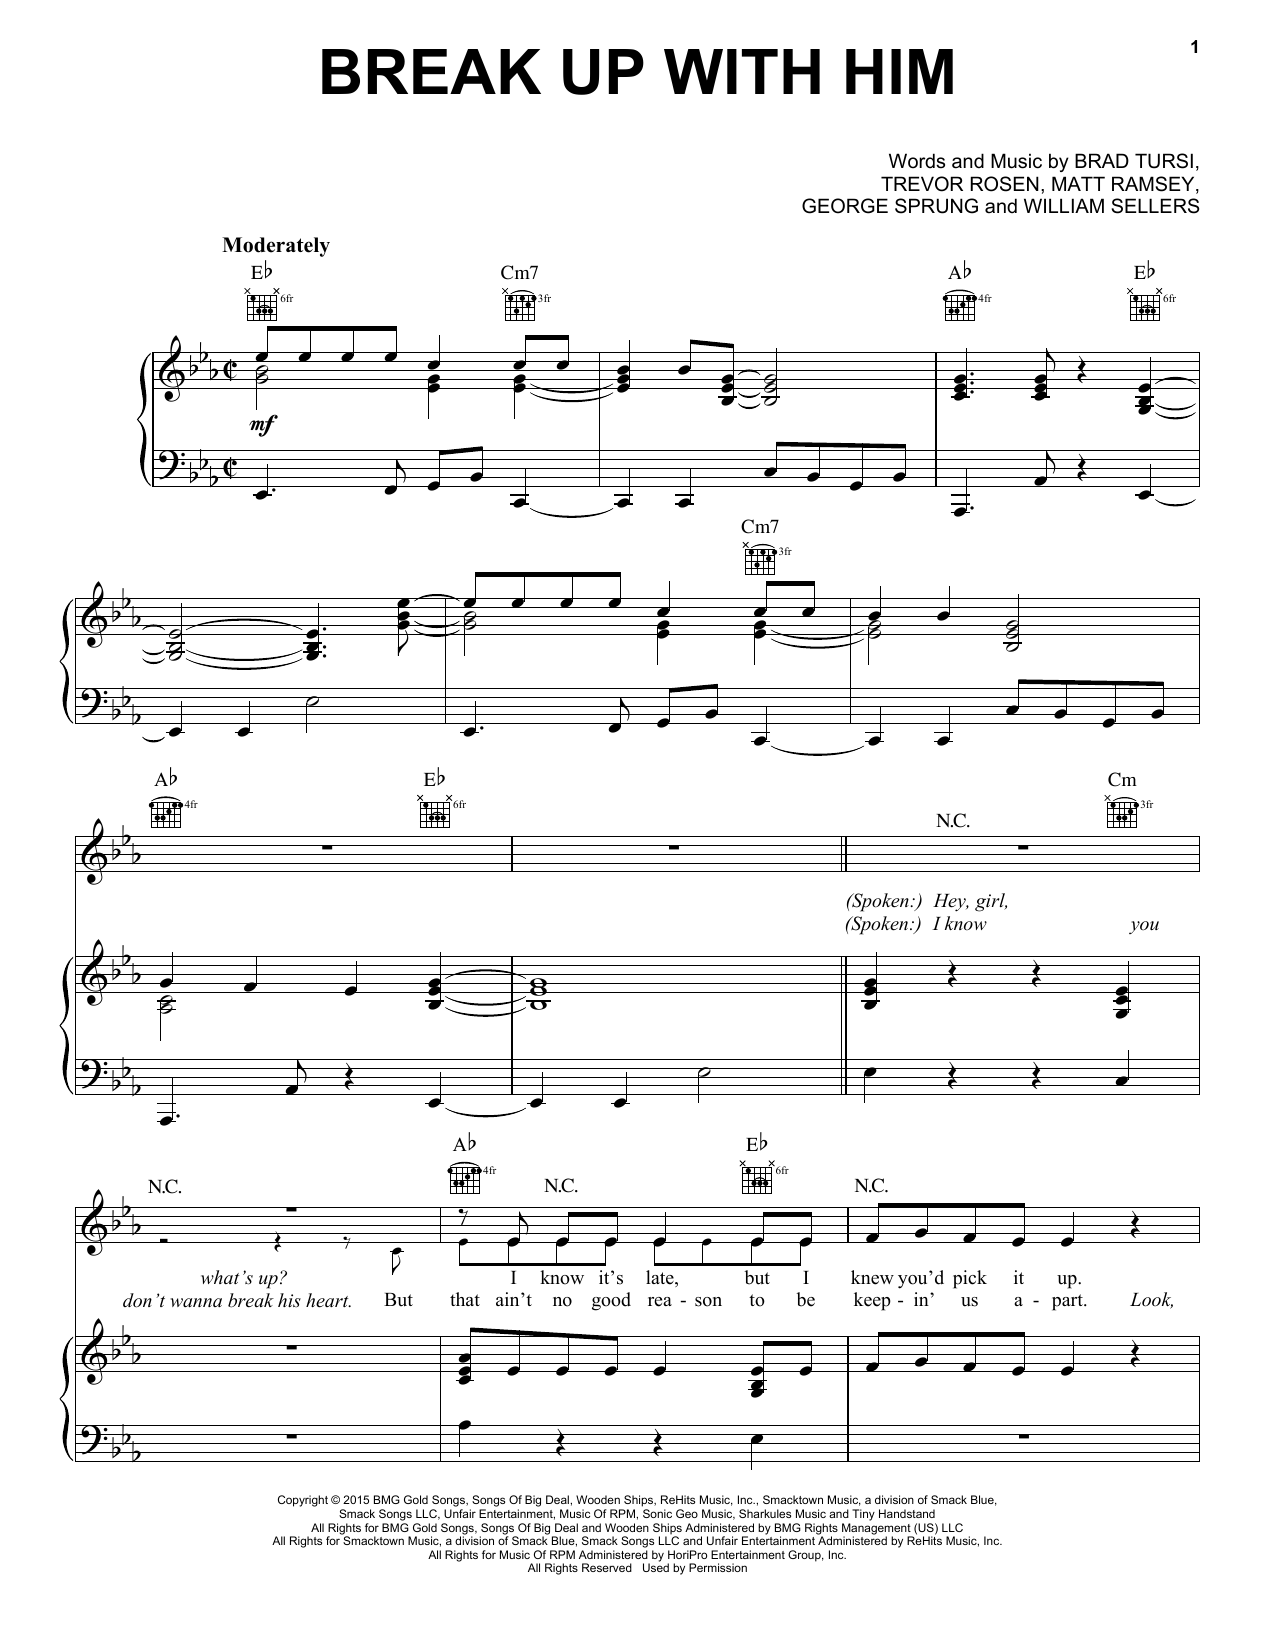 Old Dominion 'Break Up With Him' Sheet Music Notes, Chords | Download  Printable Piano, Vocal & Guitar (Right-Hand Melody) - SKU: 162000